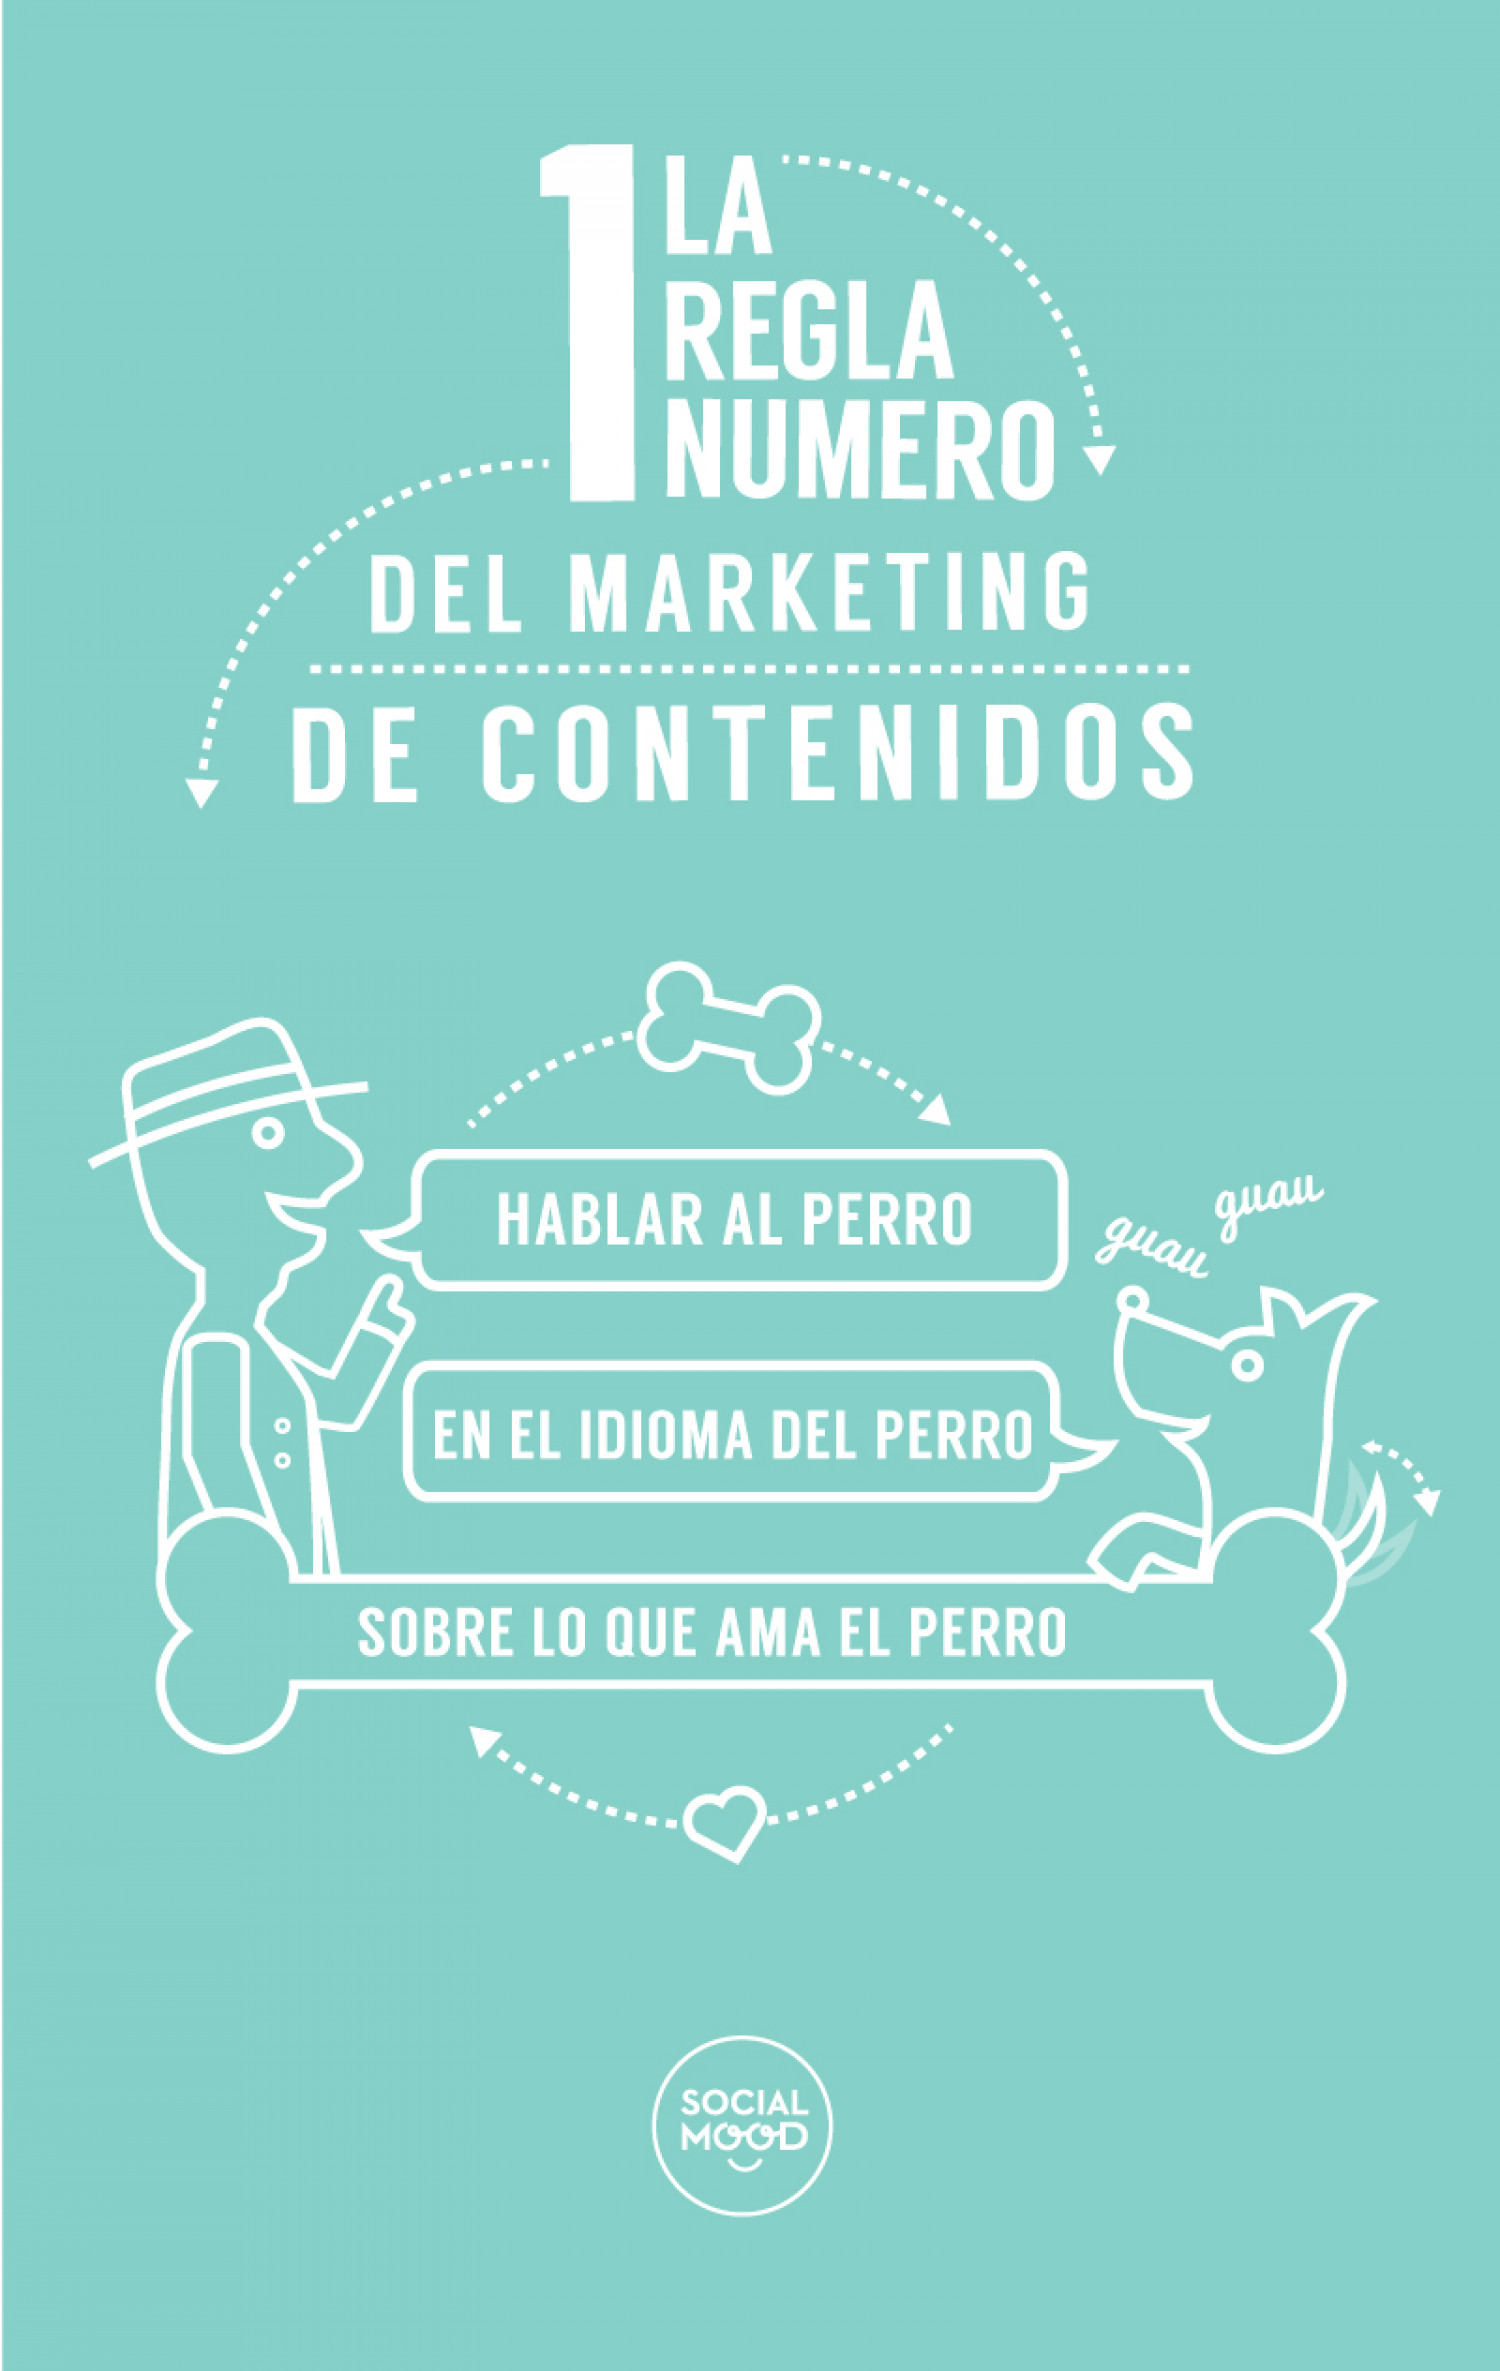 La regla número 1 del marketing de contenidos Infographic